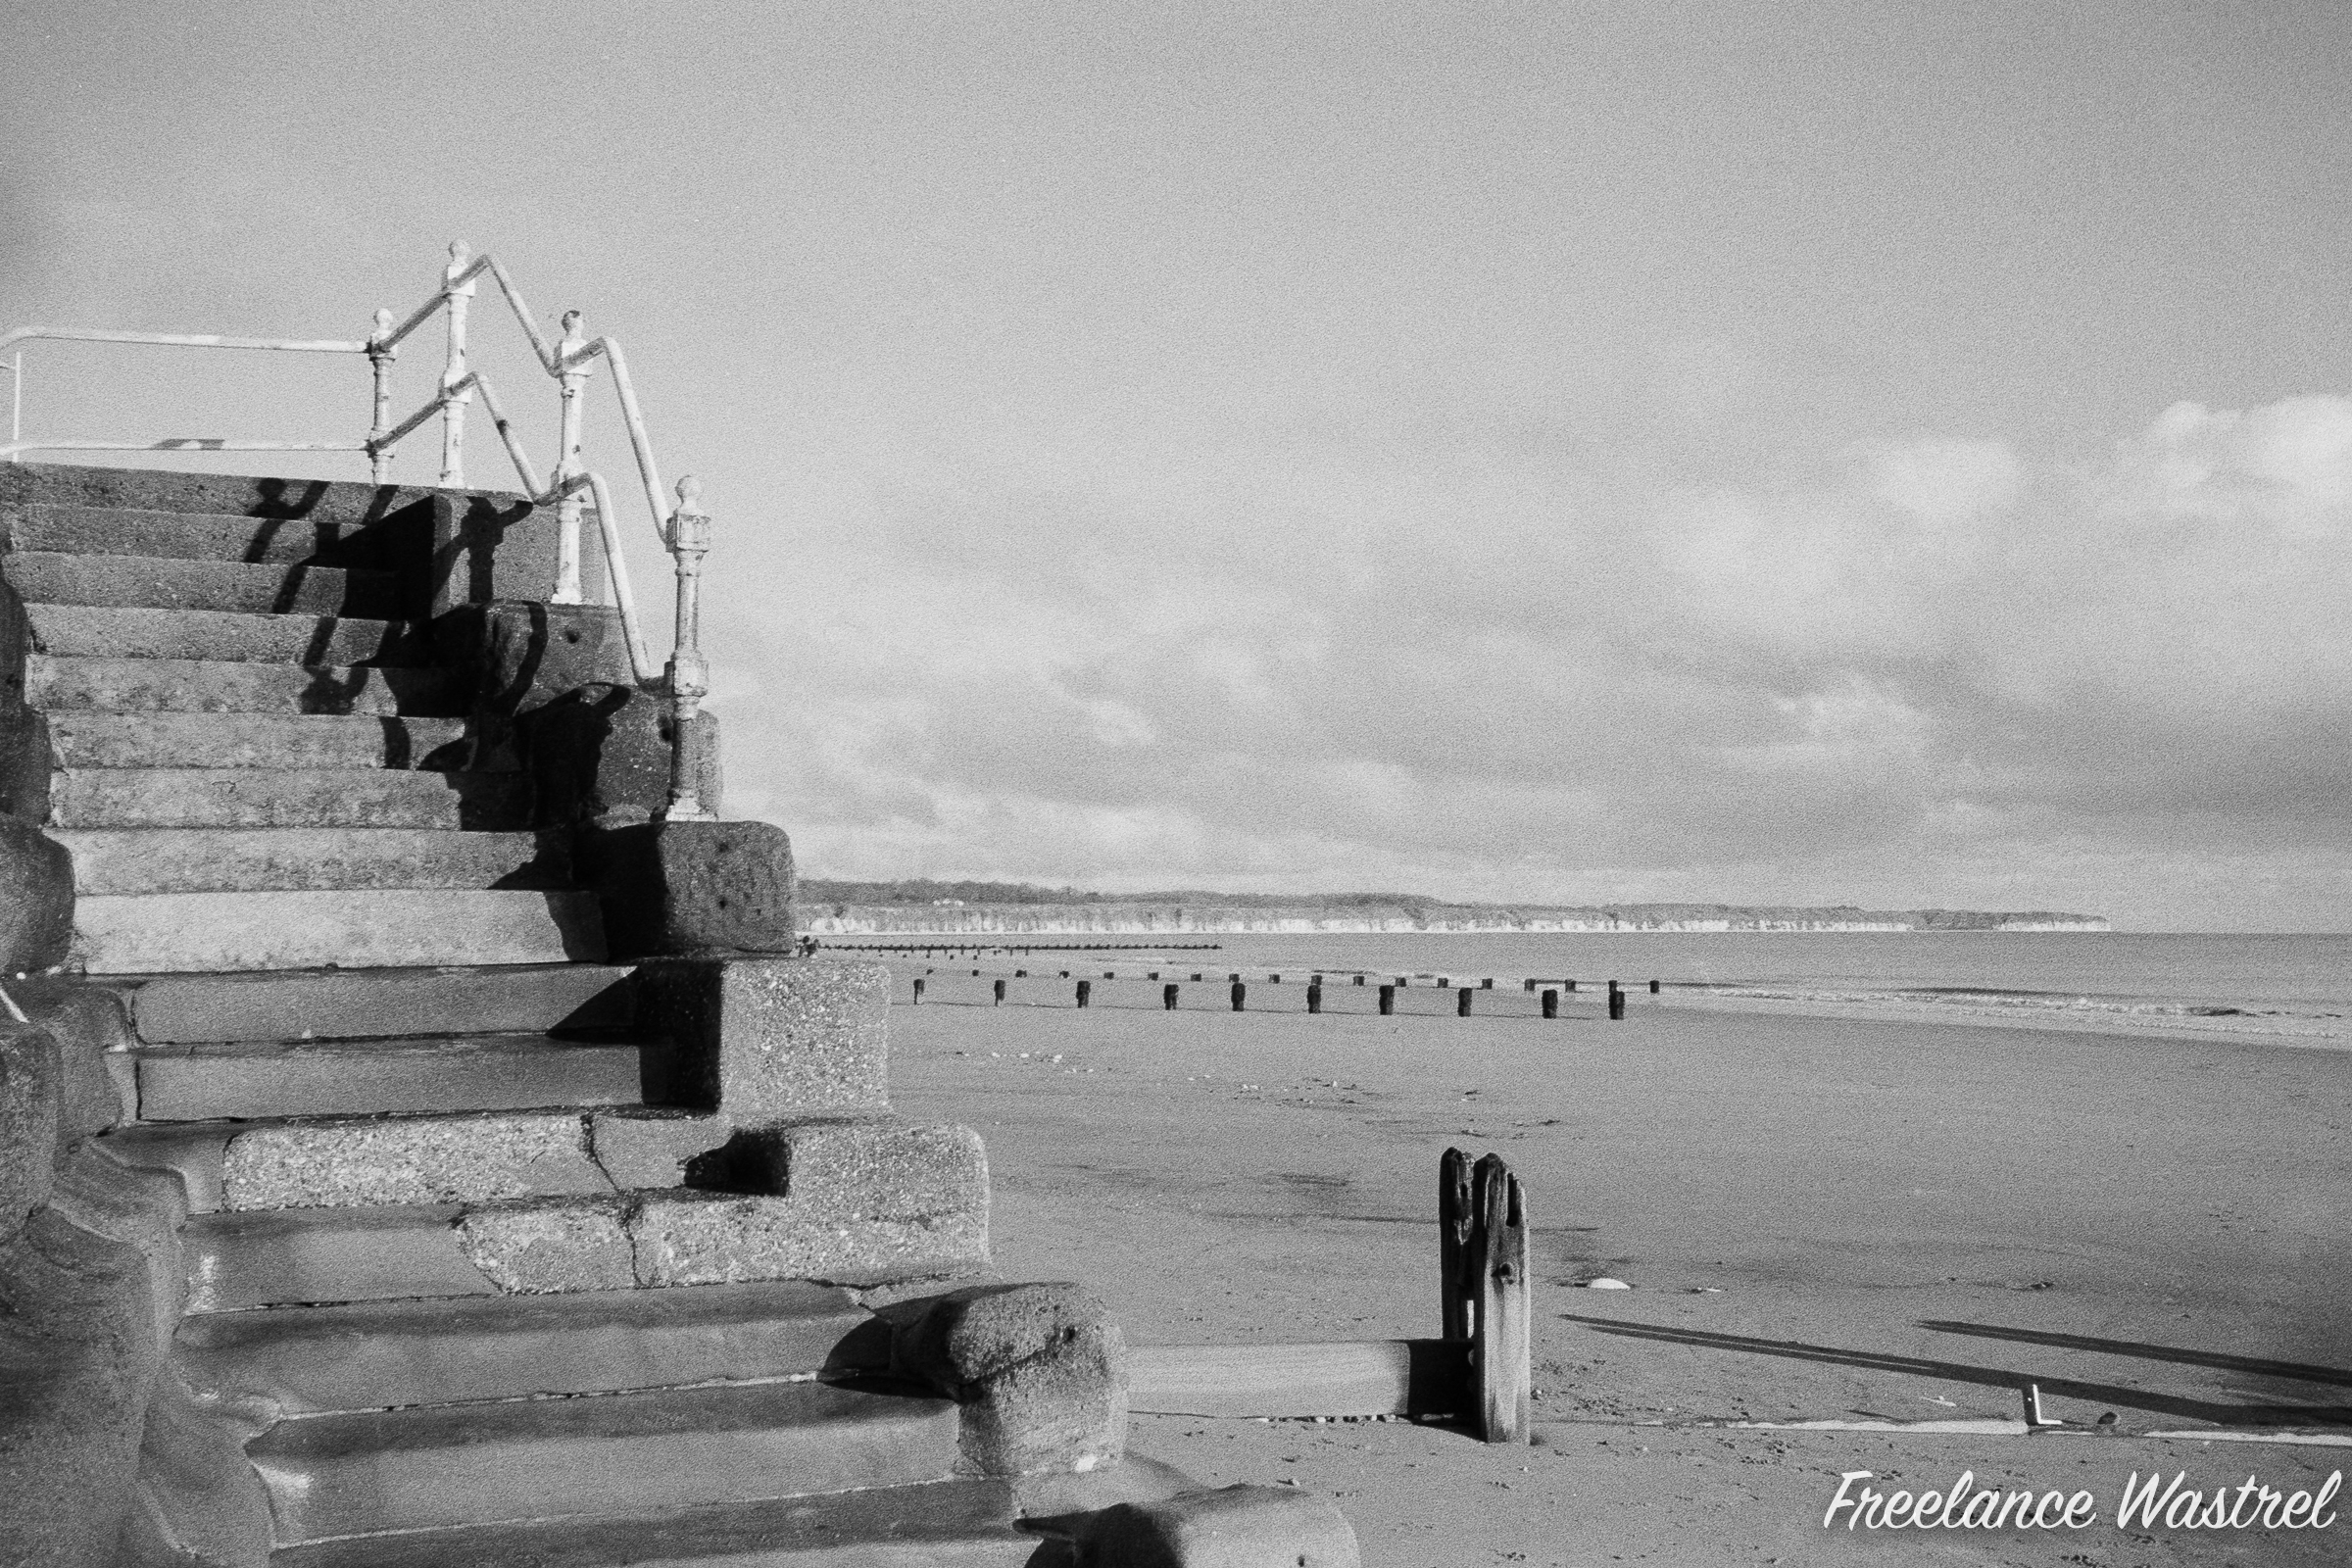 'Strop' steps, Bridlington